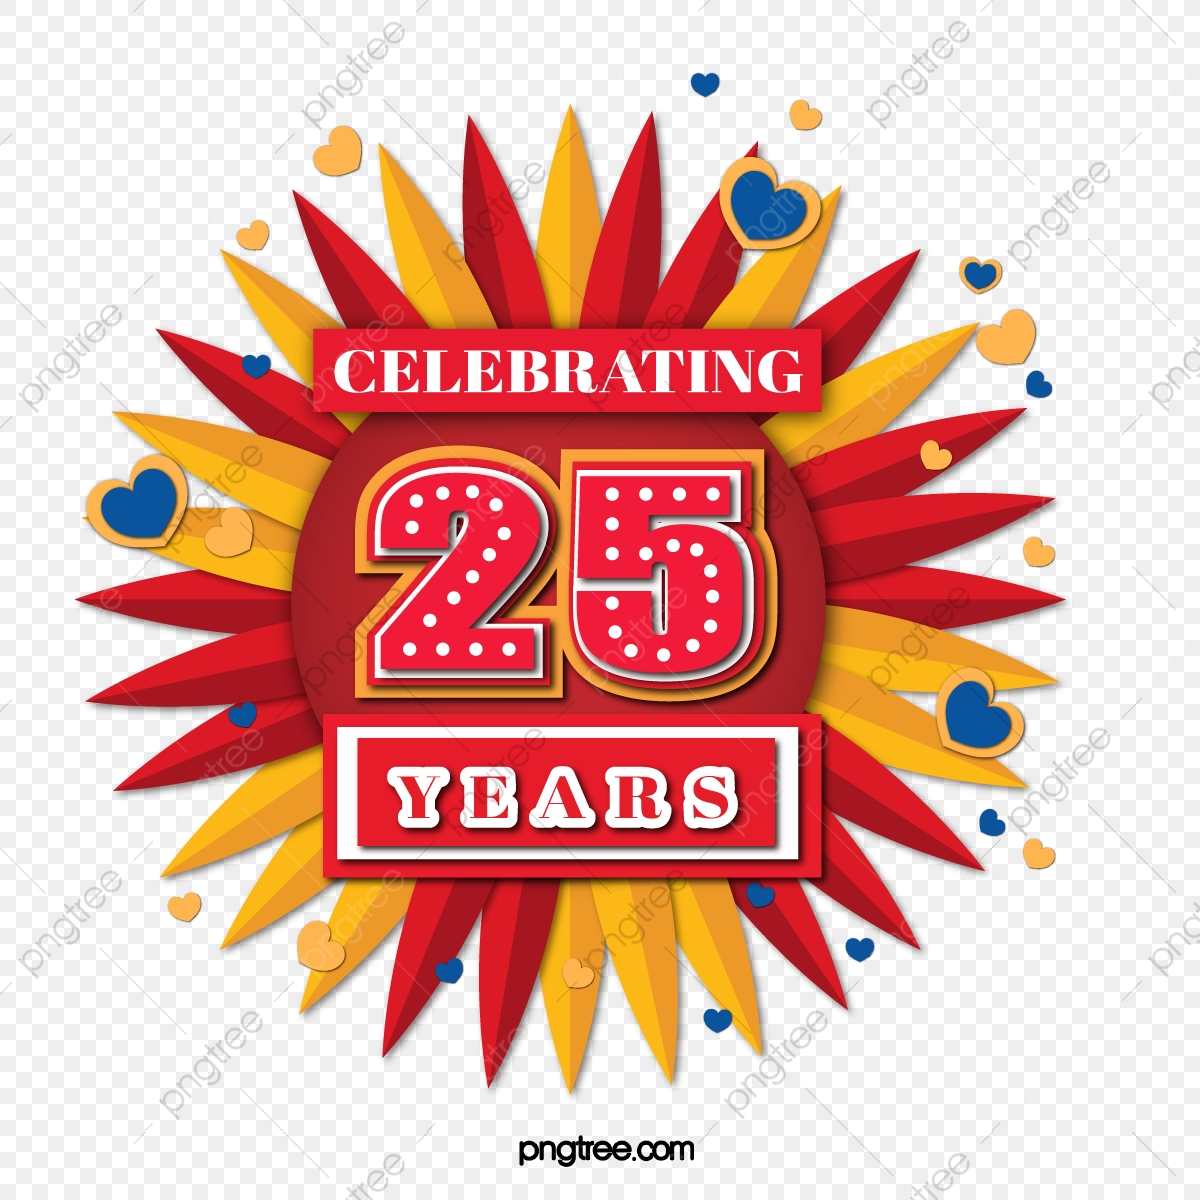 25th Anniversary, Love, Decoration PNG Transparent Clipart Image and.